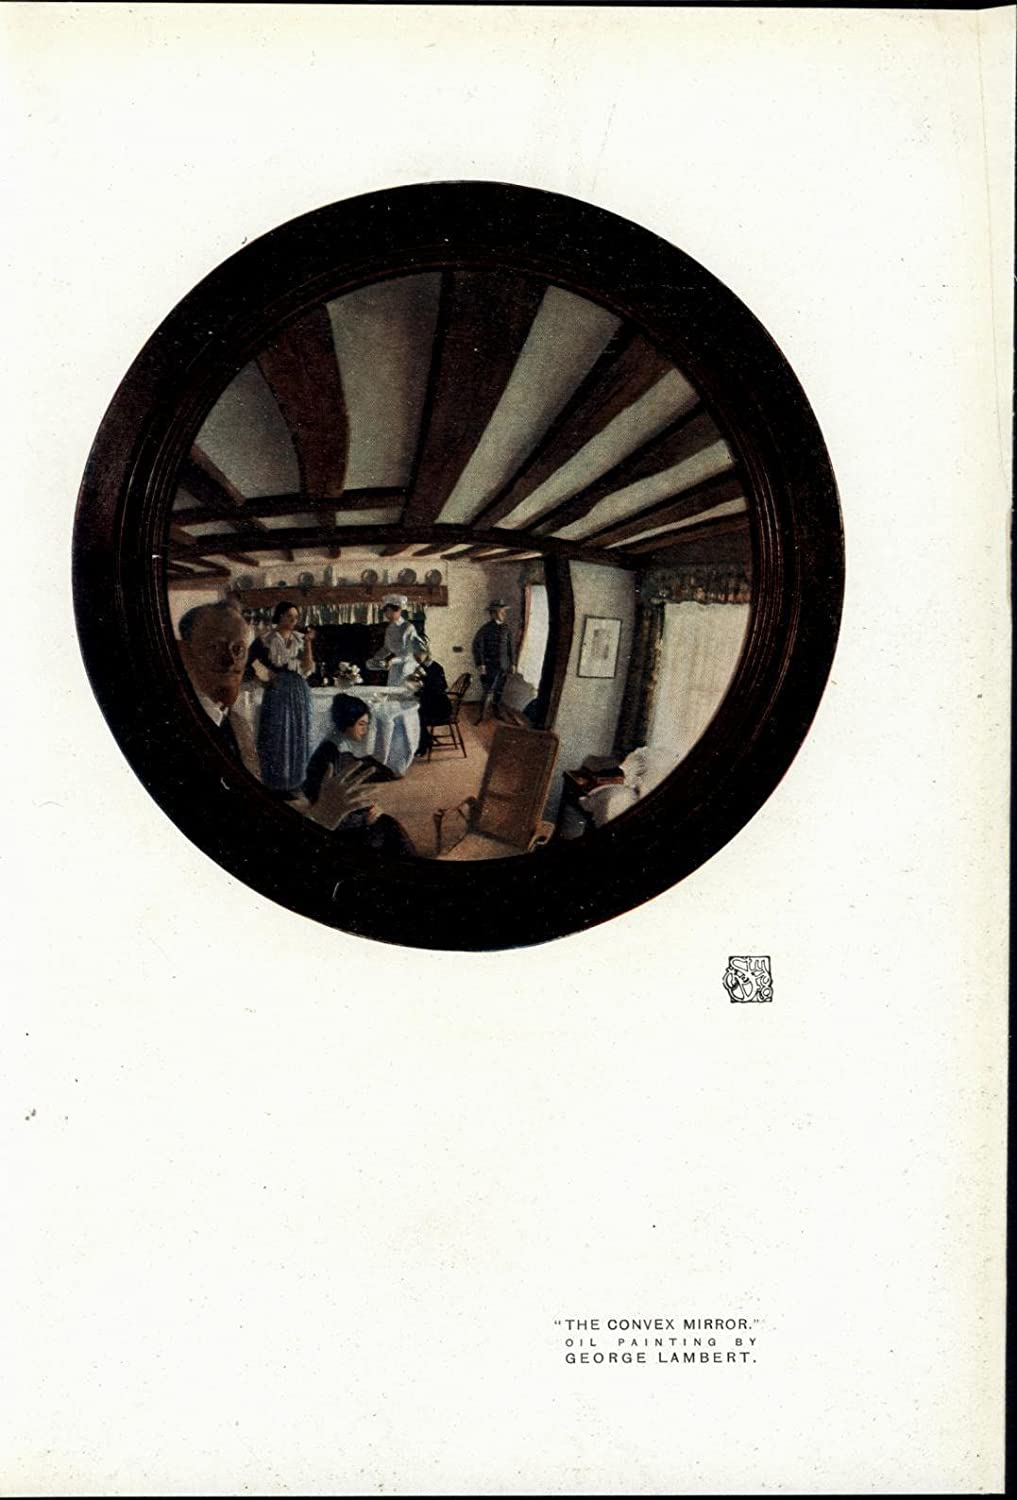 The Convex Mirror Reflection Of Dining Room Nice 1919 Vintage Color Art Print Entertainment Collectibles